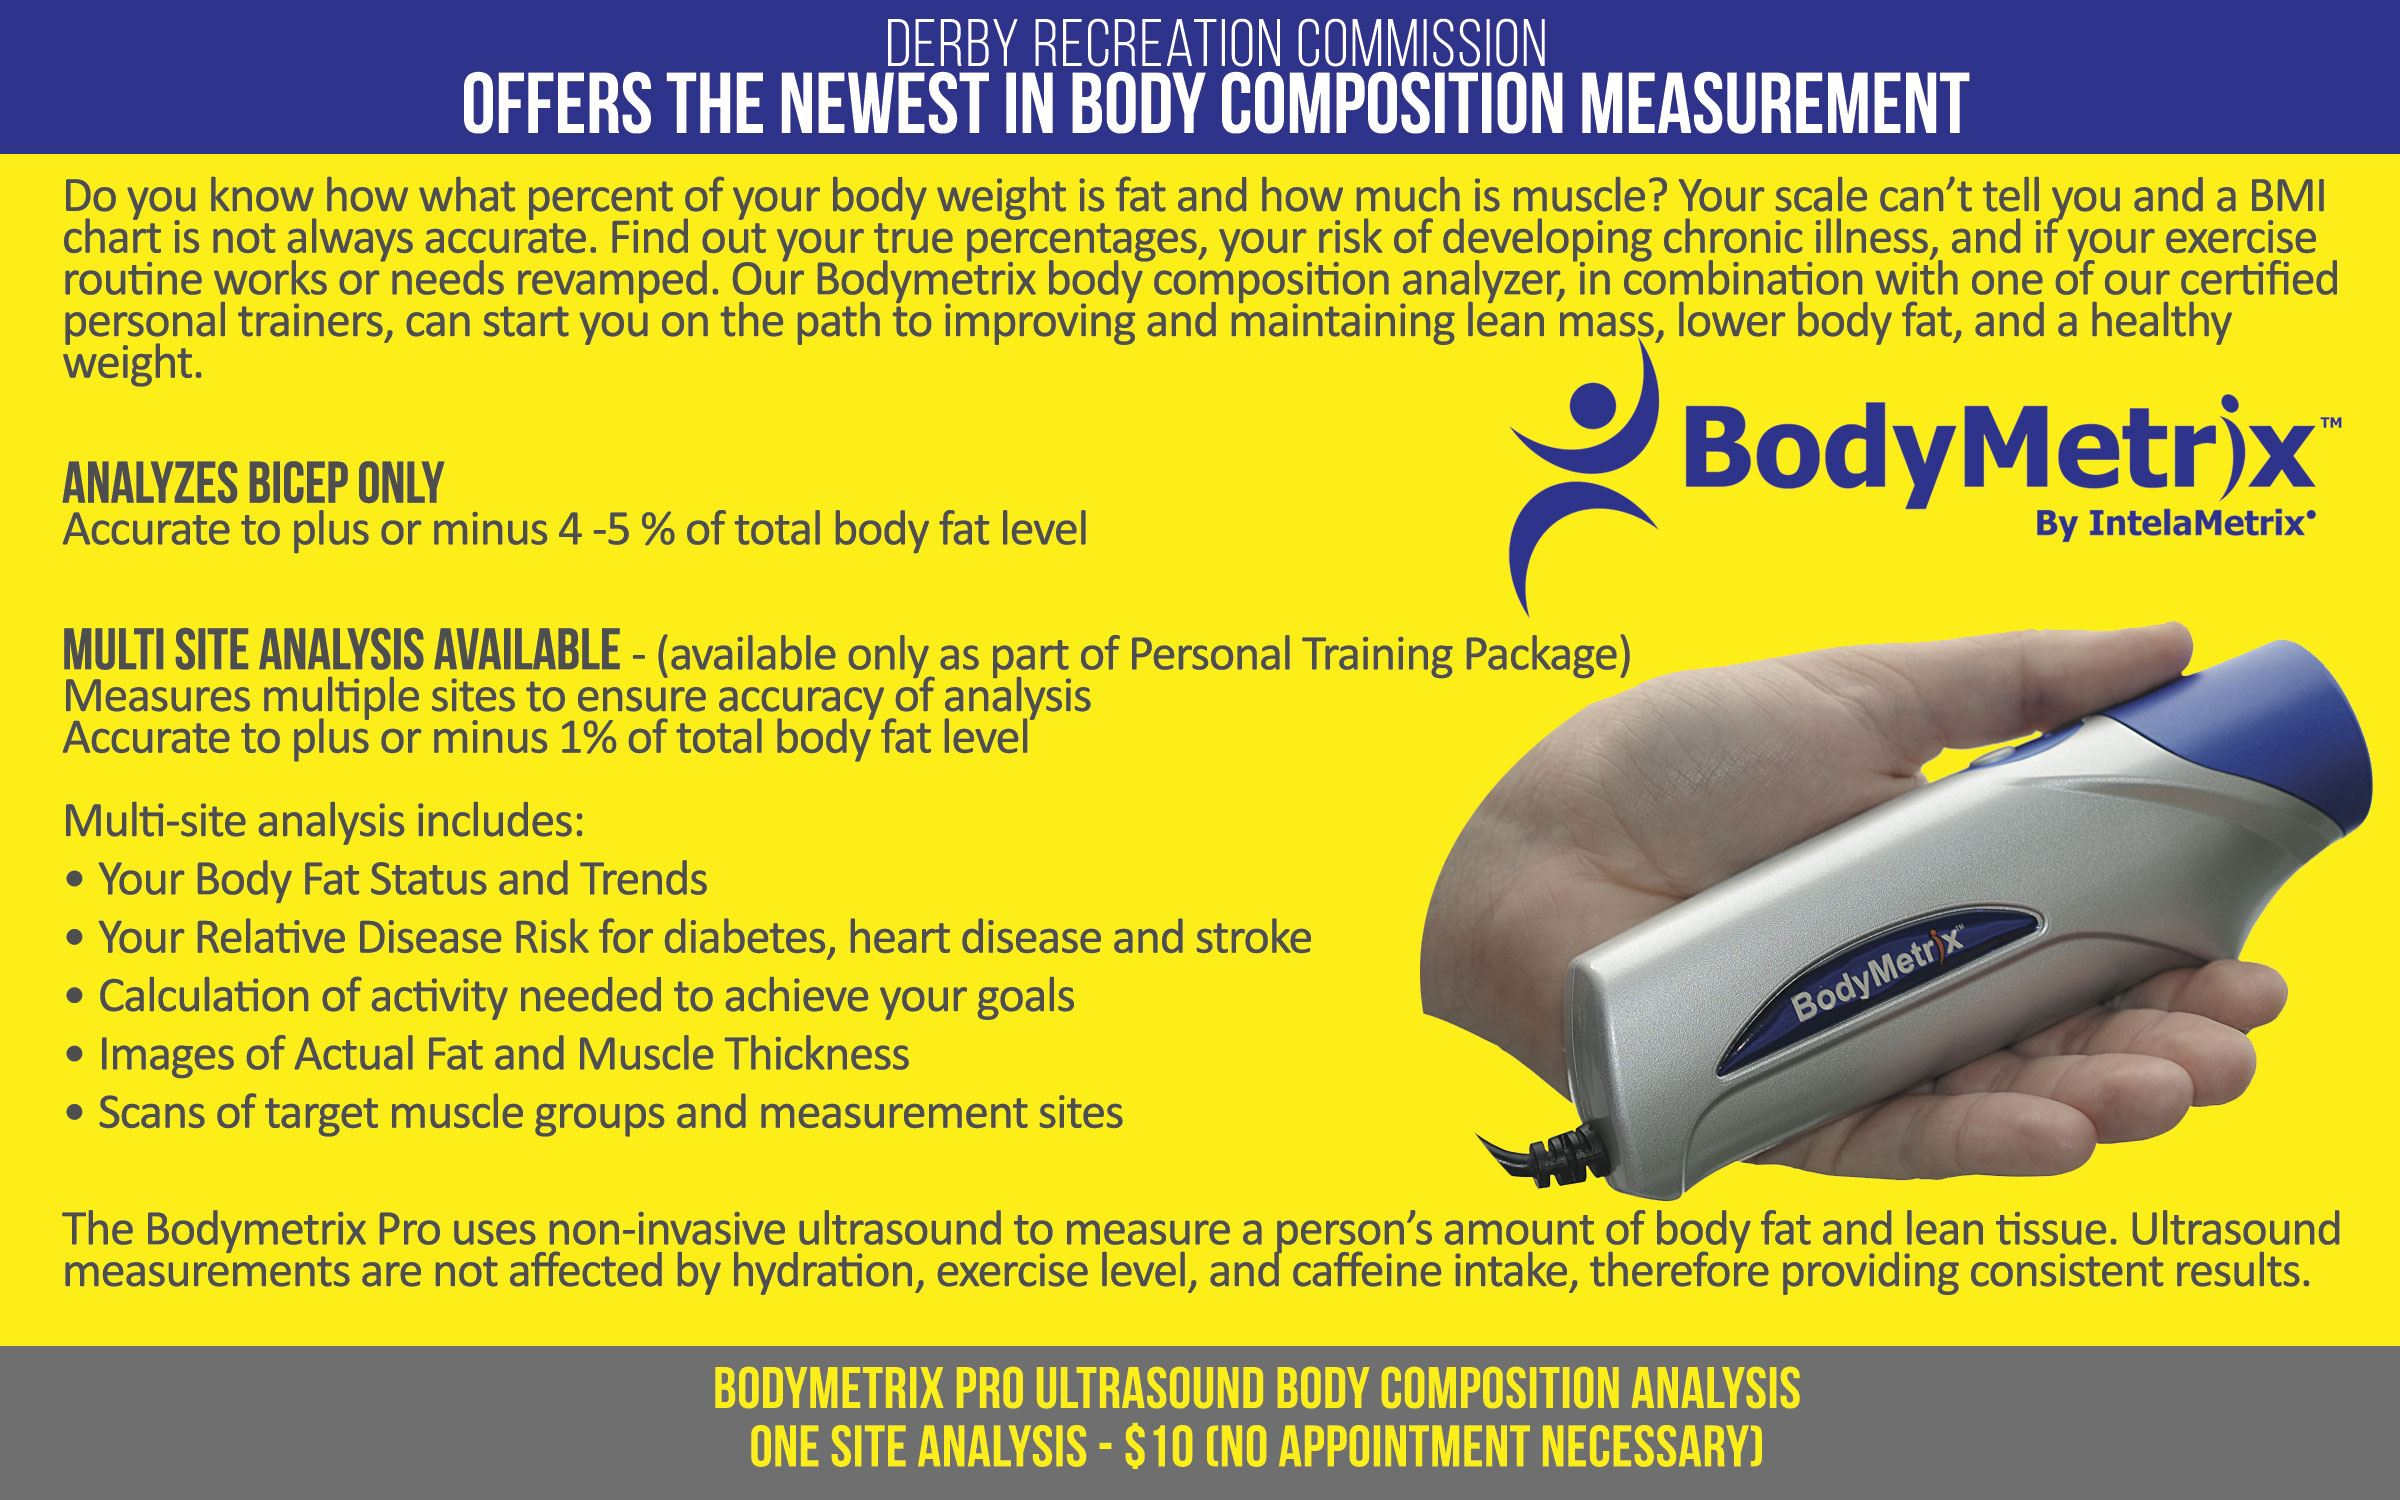 BodyMetrix